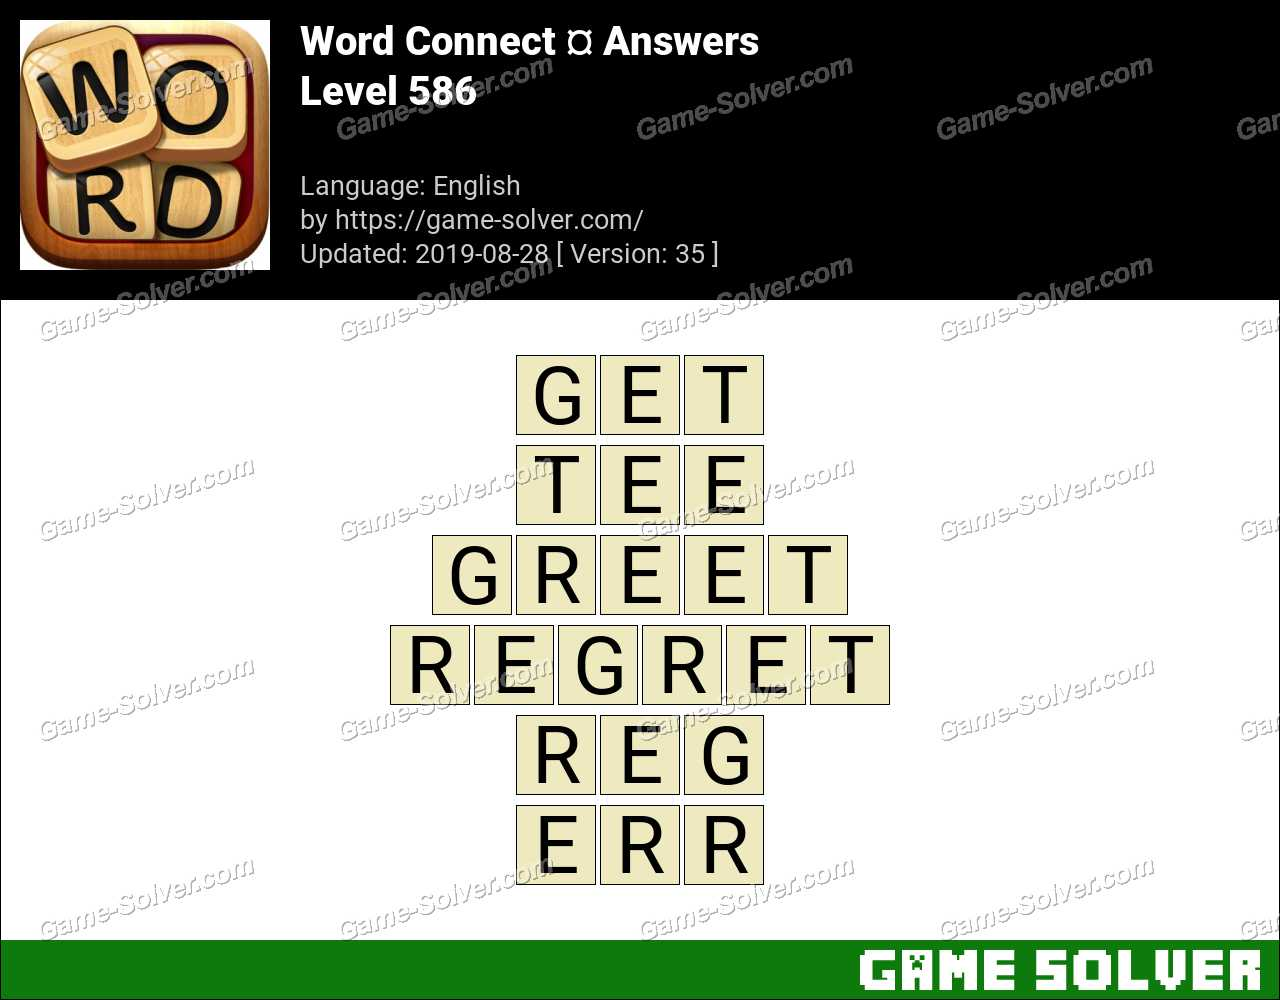 Word Connect Level 586 Answers